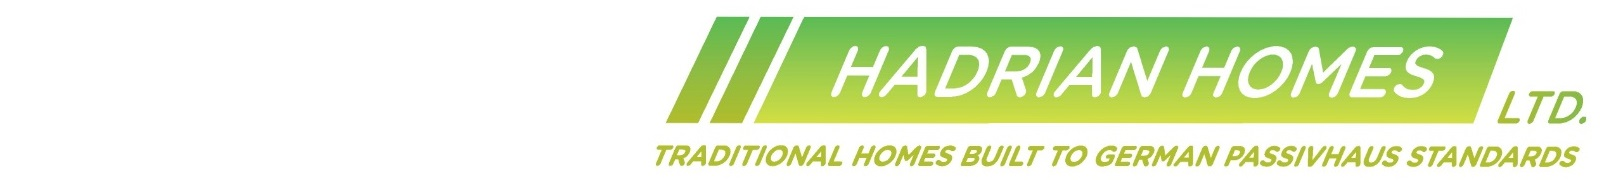 Hadrian Homes Ltd